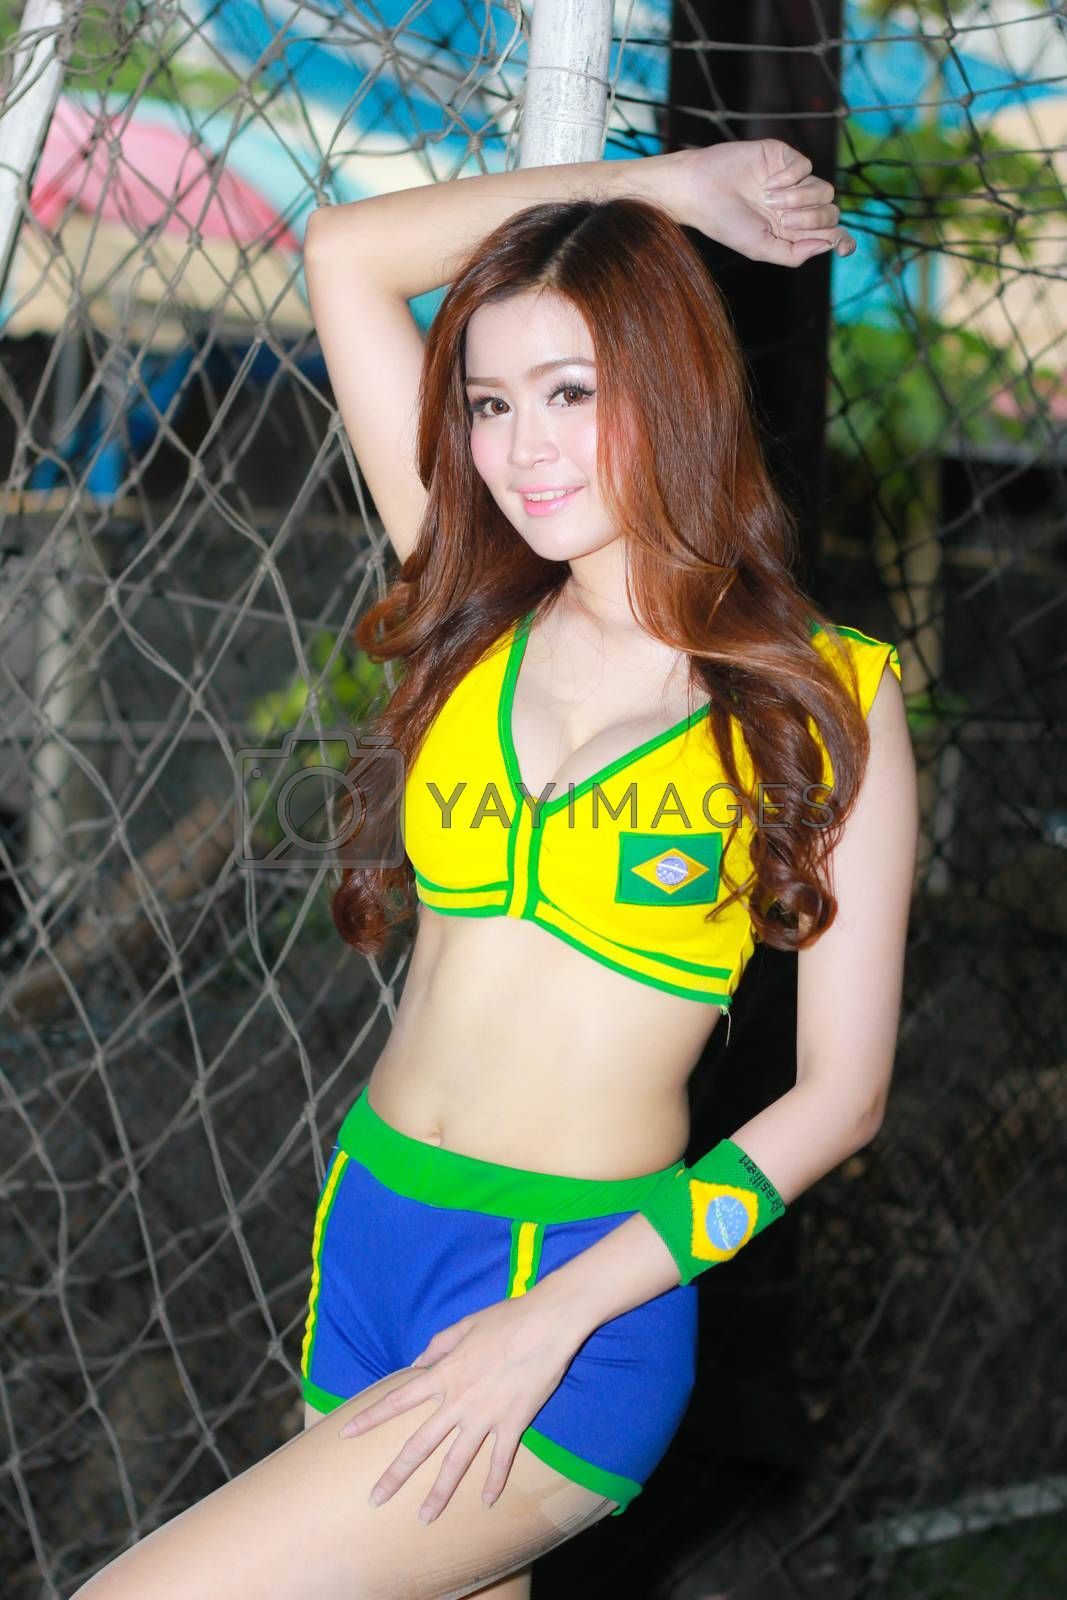 BANGKOK, THAILAND - JUNE 29, 2014: Unidentified model with Brazil costume pose for promote World Cup 2014 in futsal park on June 29, 2014 in Bangkok, Thailand.